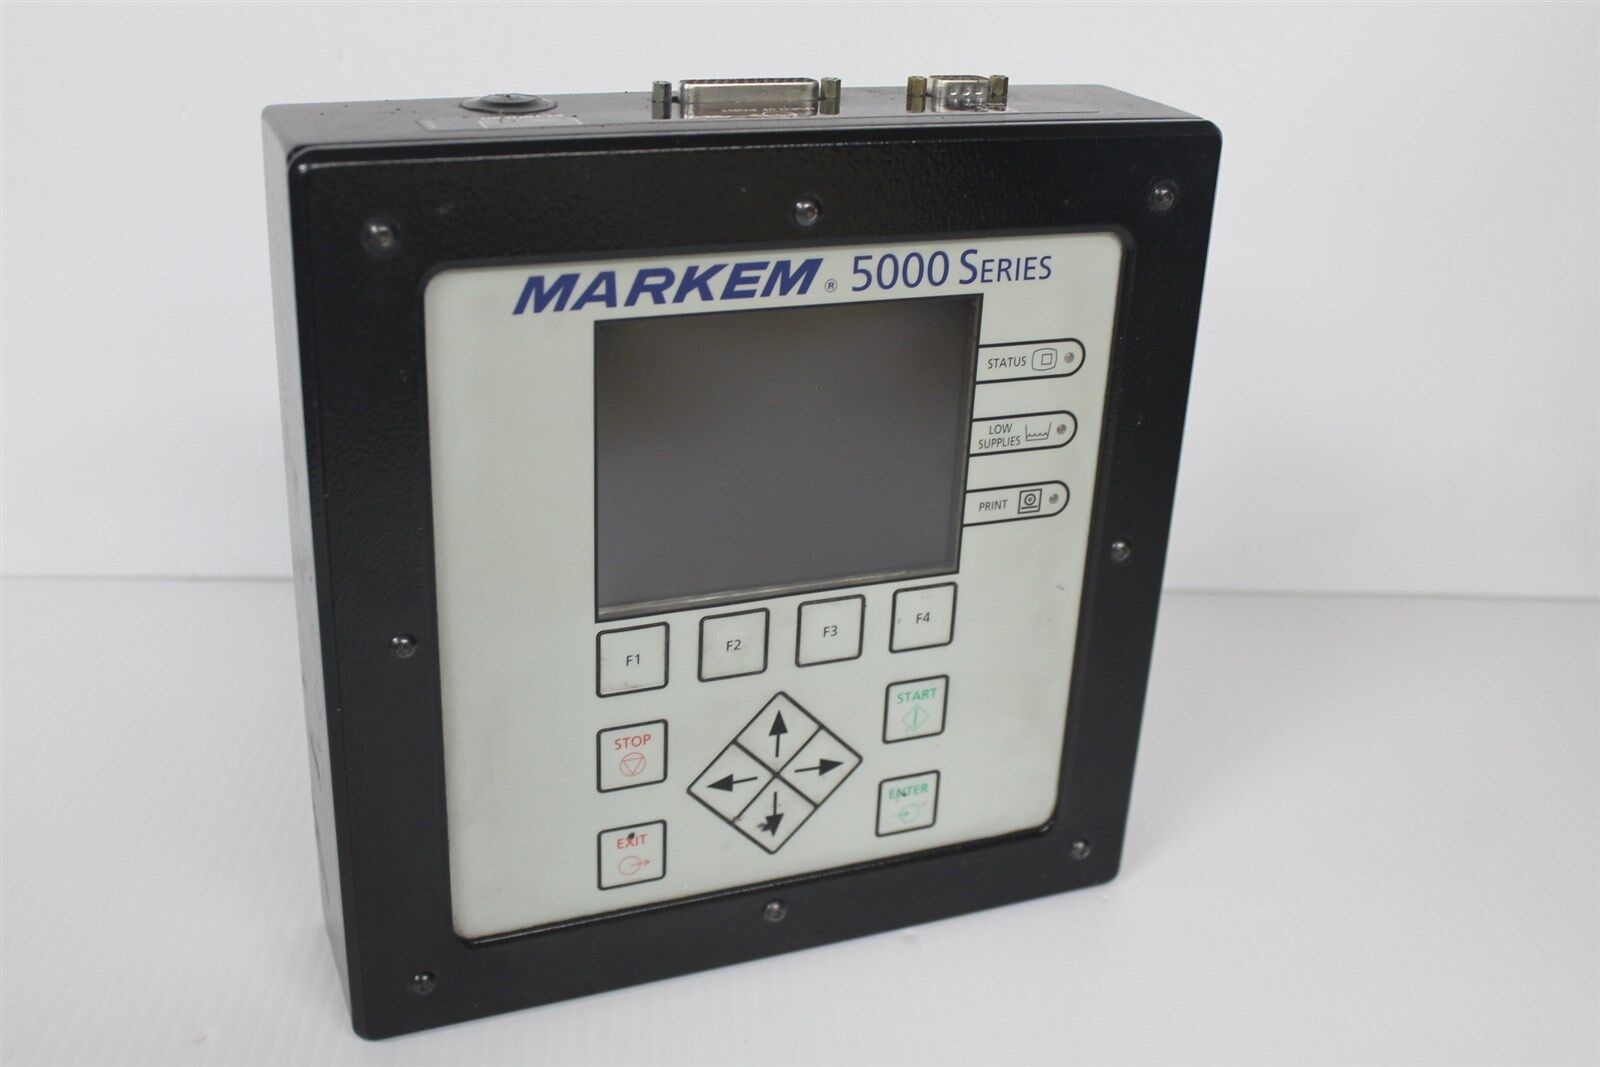 Markem 5000 Series Thermall Printer Operator Interface Panel